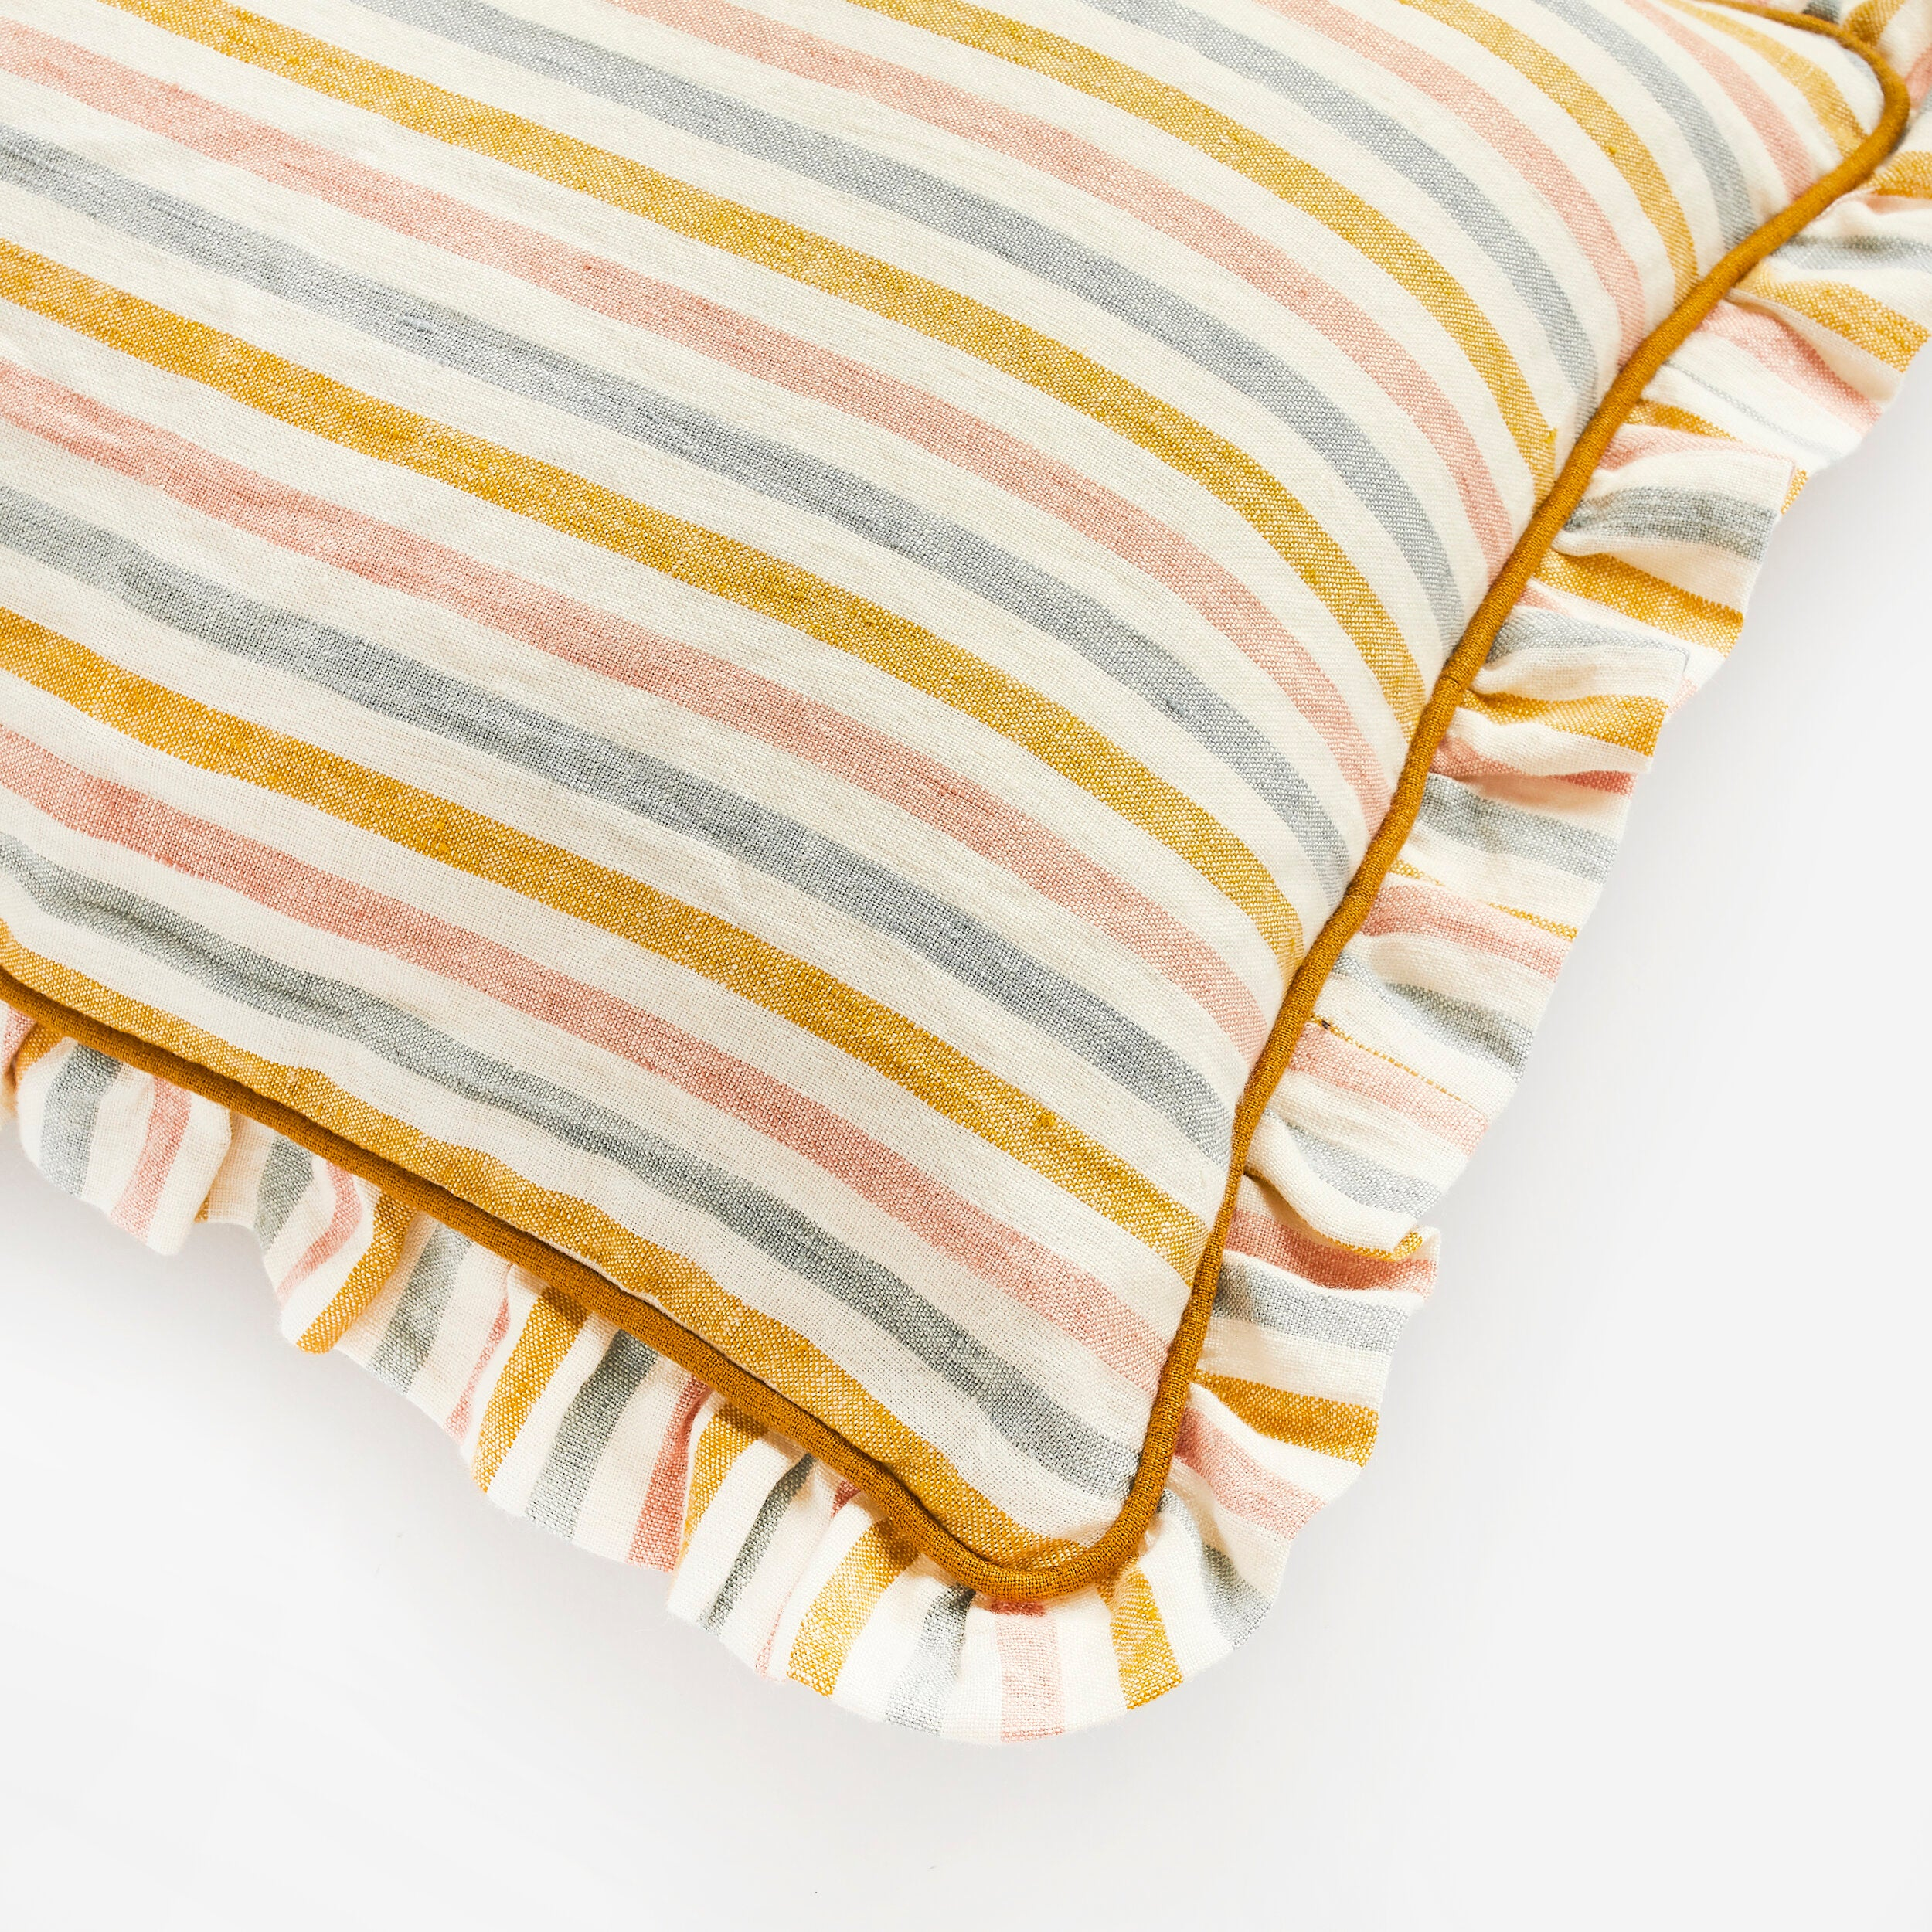 Handmade stripe cushion with frill trim